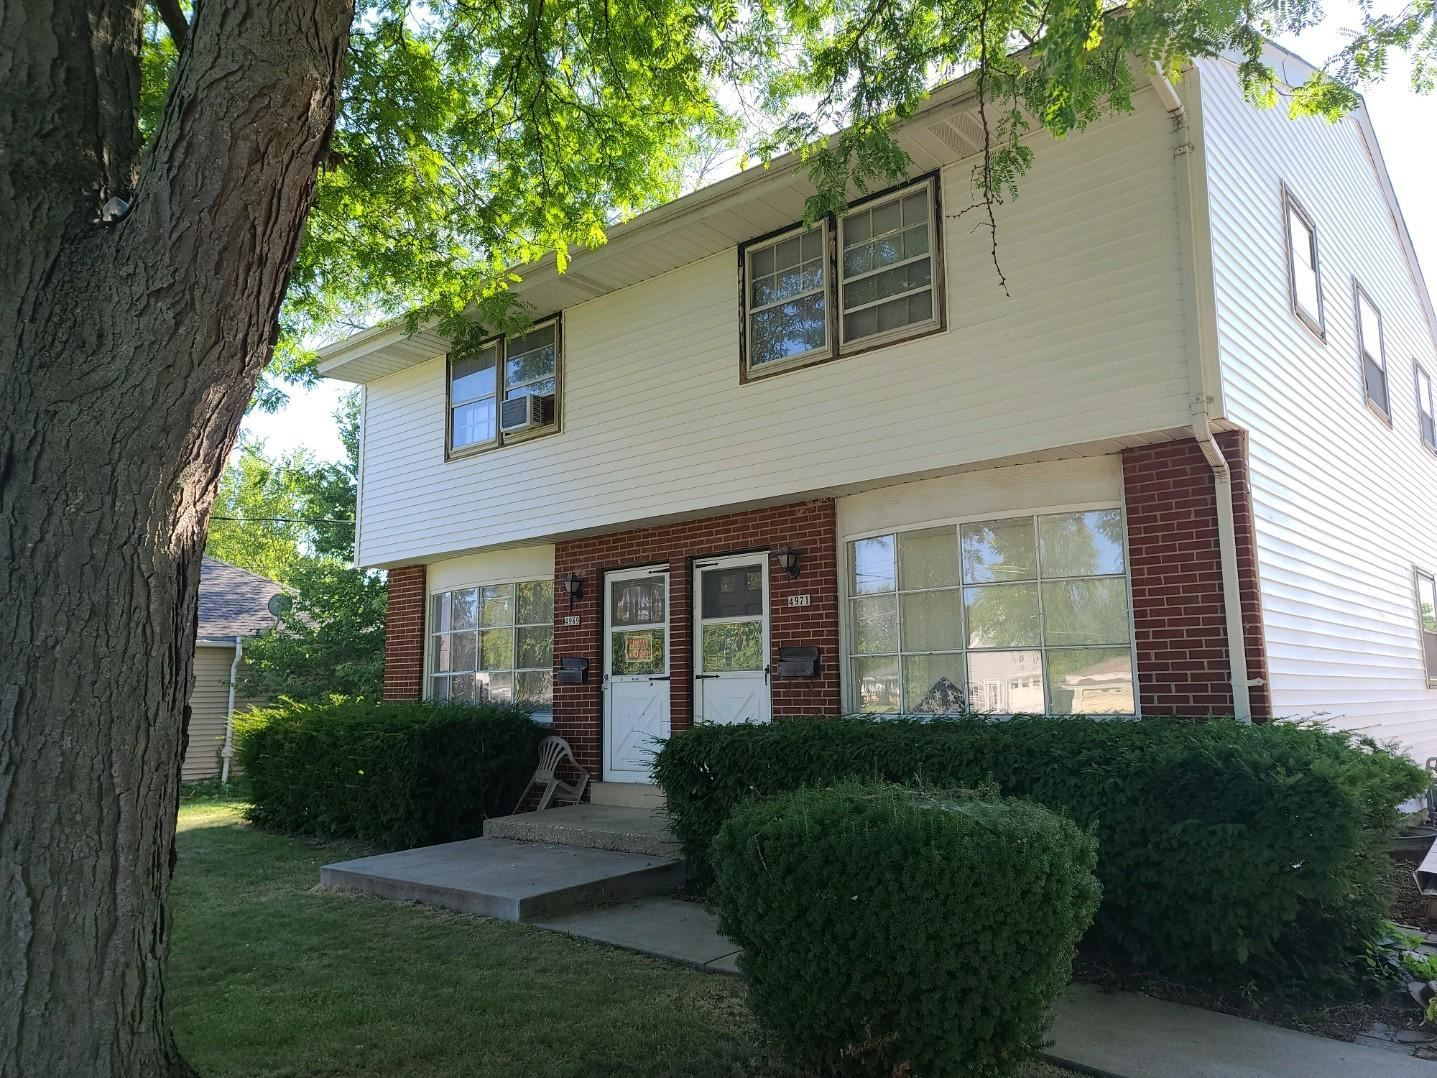 4969 N 105th St #4971, Milwaukee, WI 53225 - #: 1703363